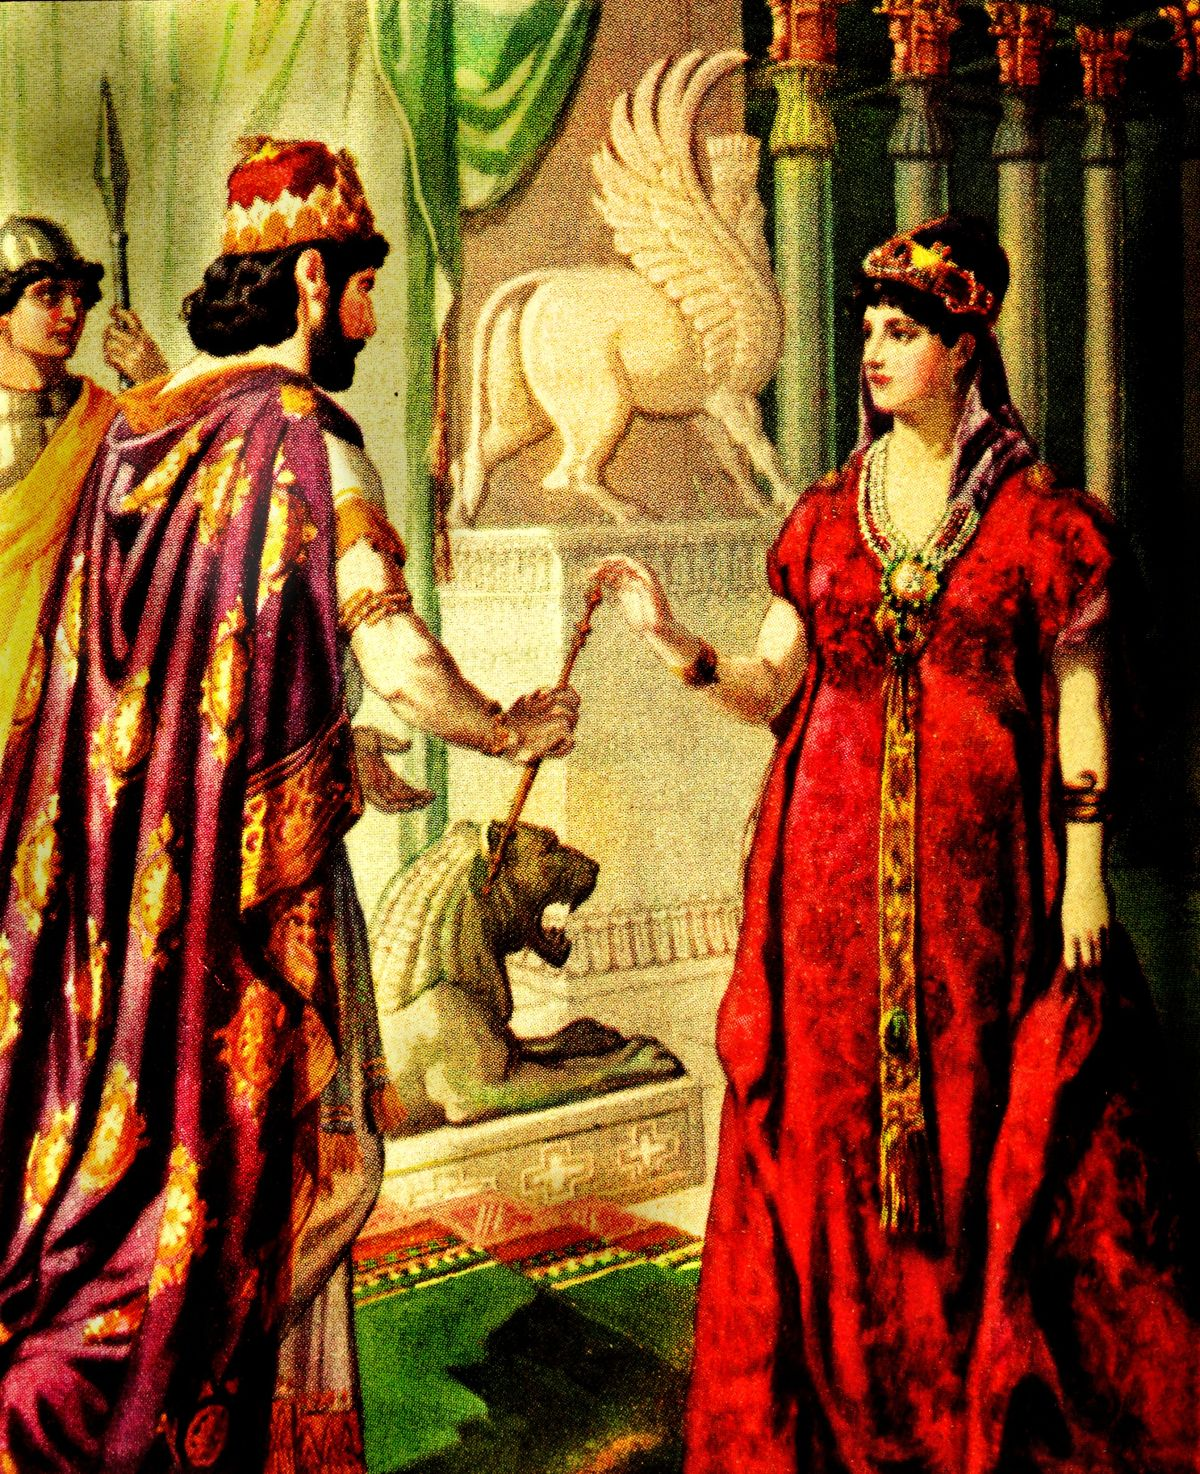 Xerxes offers clemency to Esther.